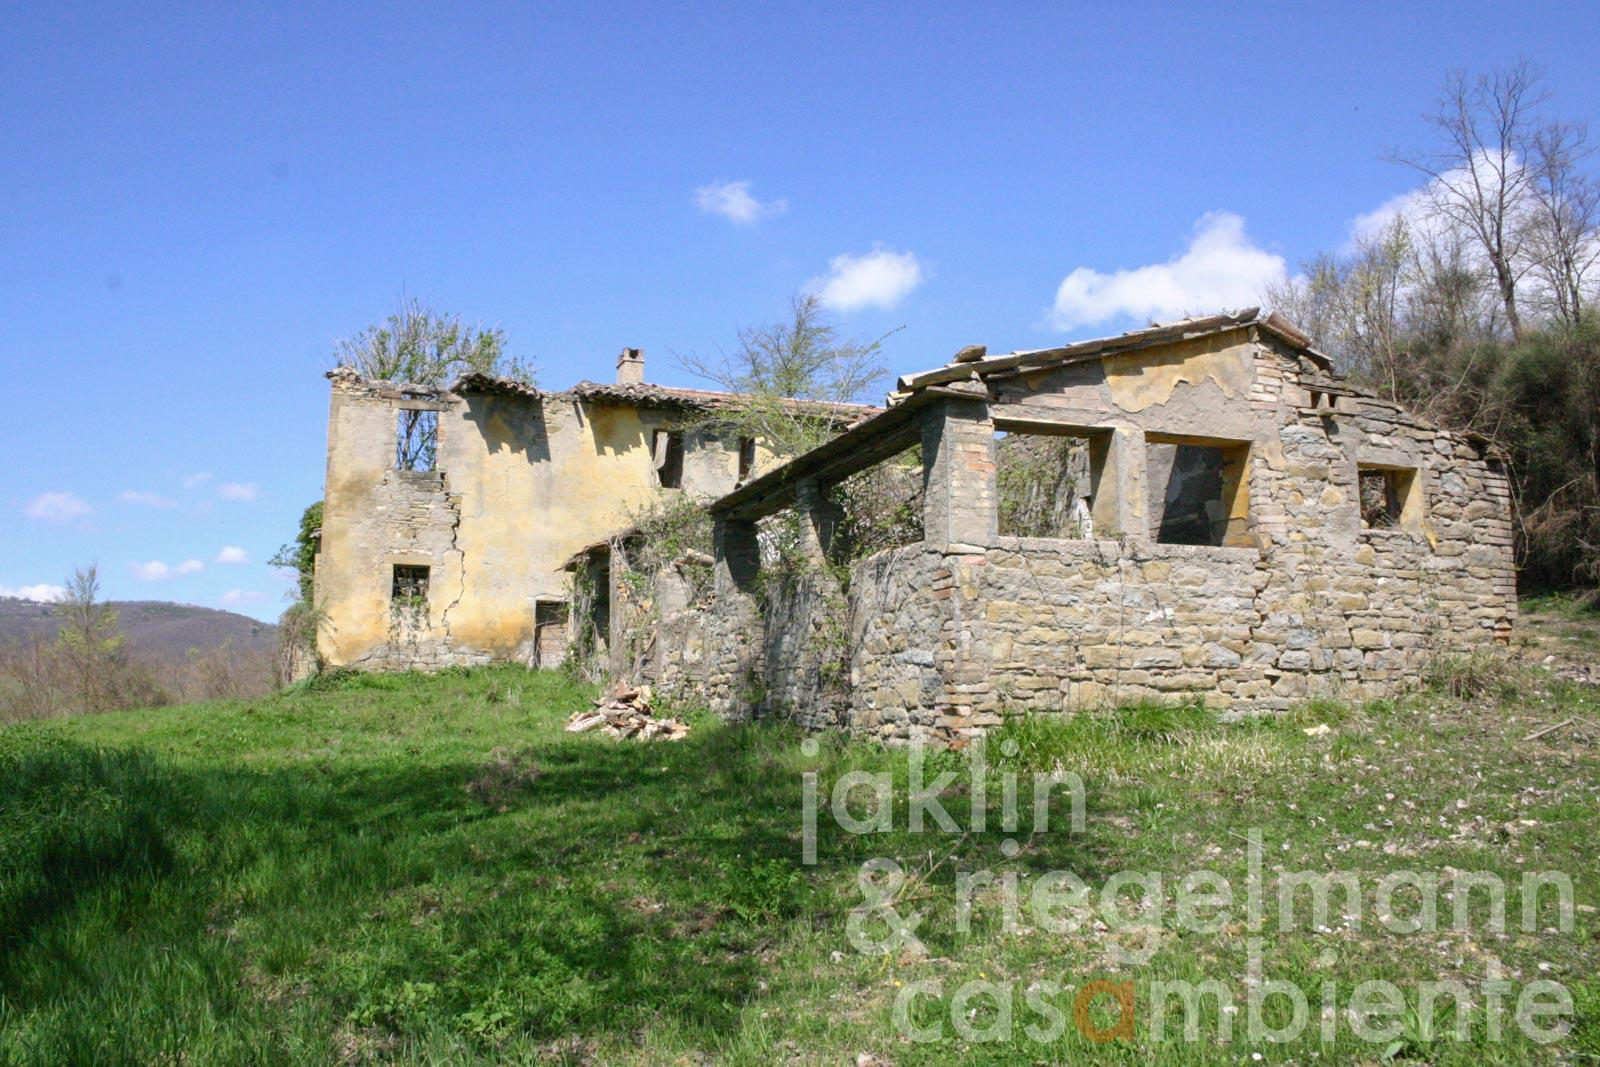 Agricultural property to be restored with ruins and 20 ha of land